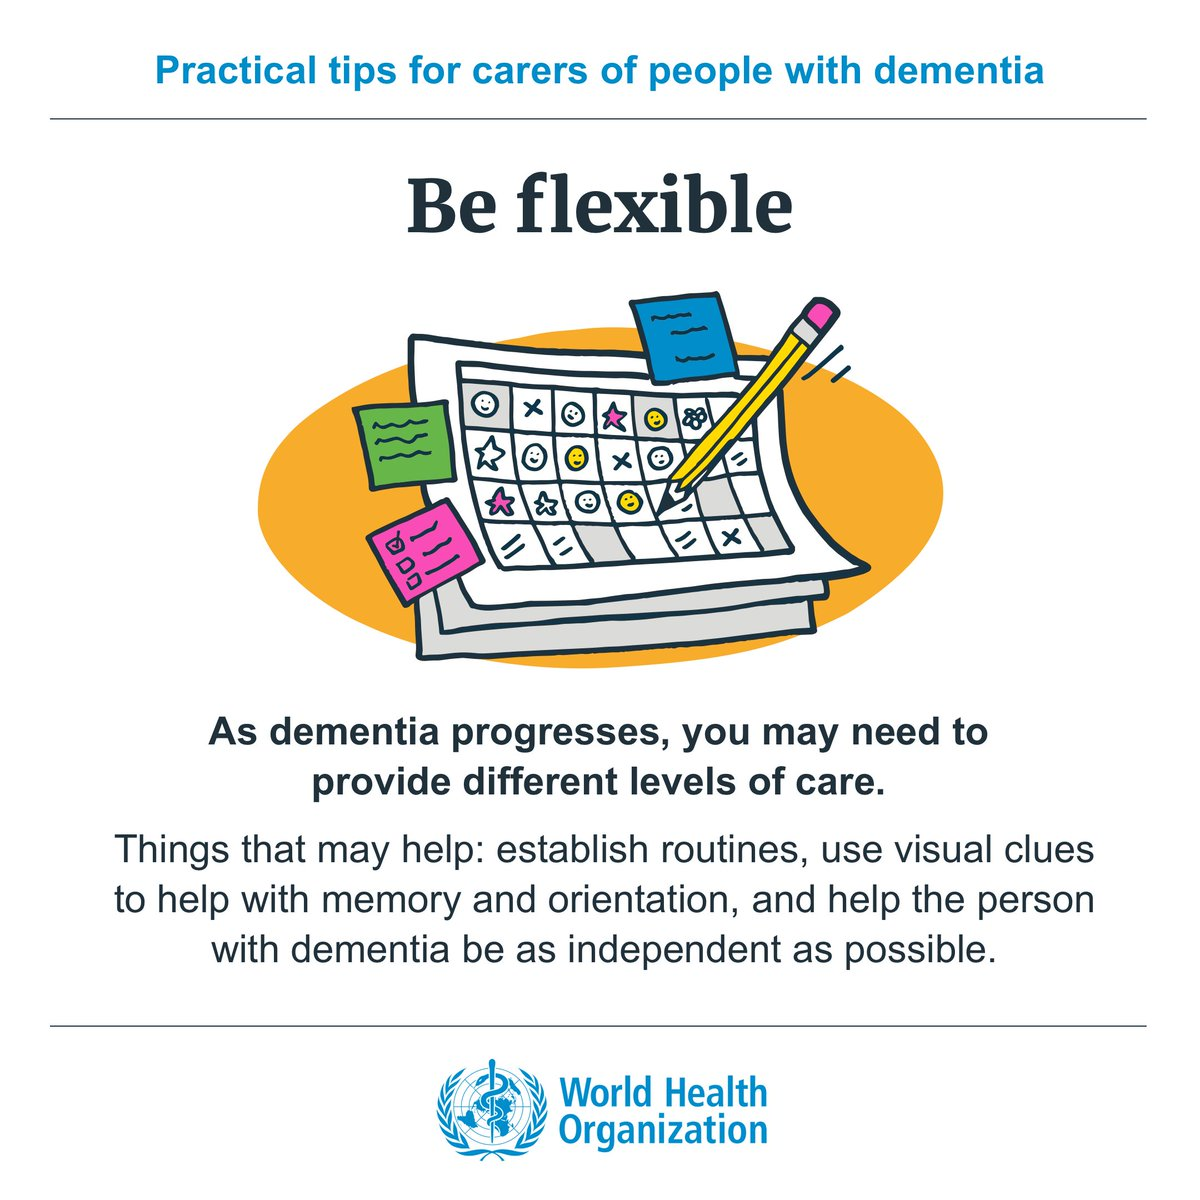 Q: Q: How can I provide every day care to the person with #dementia? A: https://t.co/0UC7ieHW70  #MentalHealth https://t.co/X6XVV3Qr4M